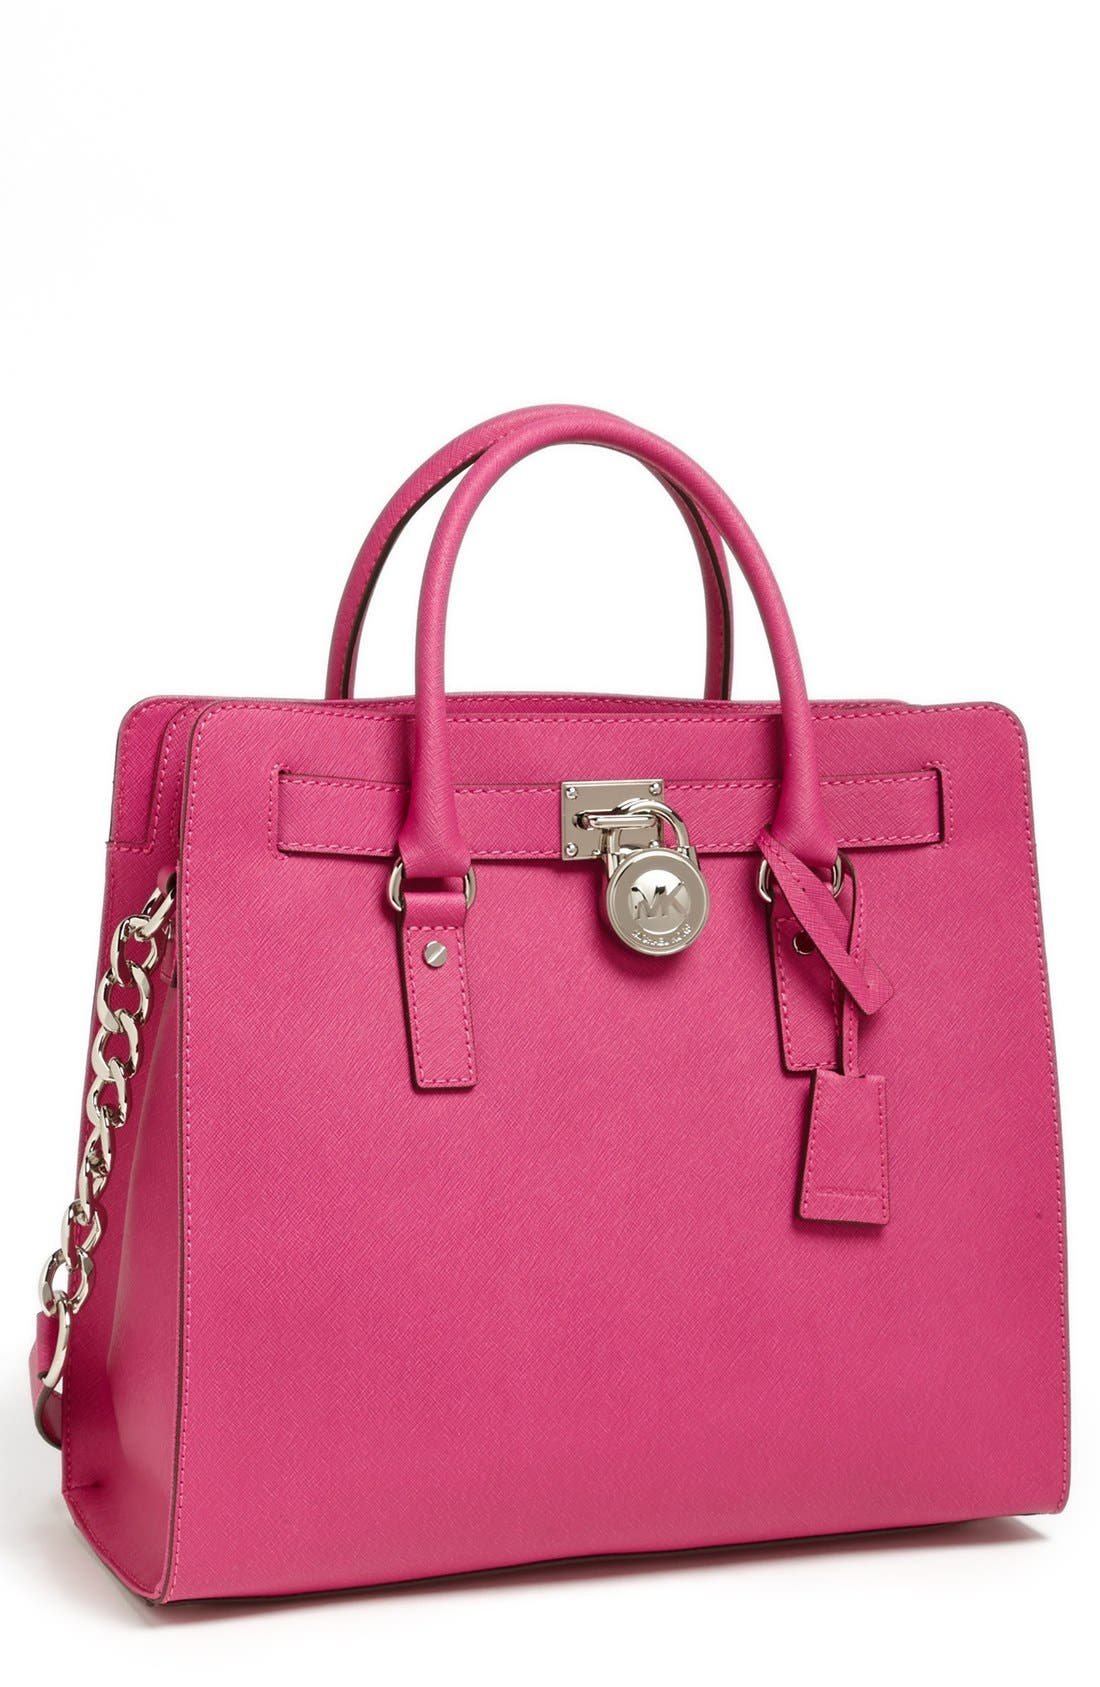 Alternate Image 1 Selected - MICHAEL Michael Kors 'Large Hamilton' Saffiano Leather Tote